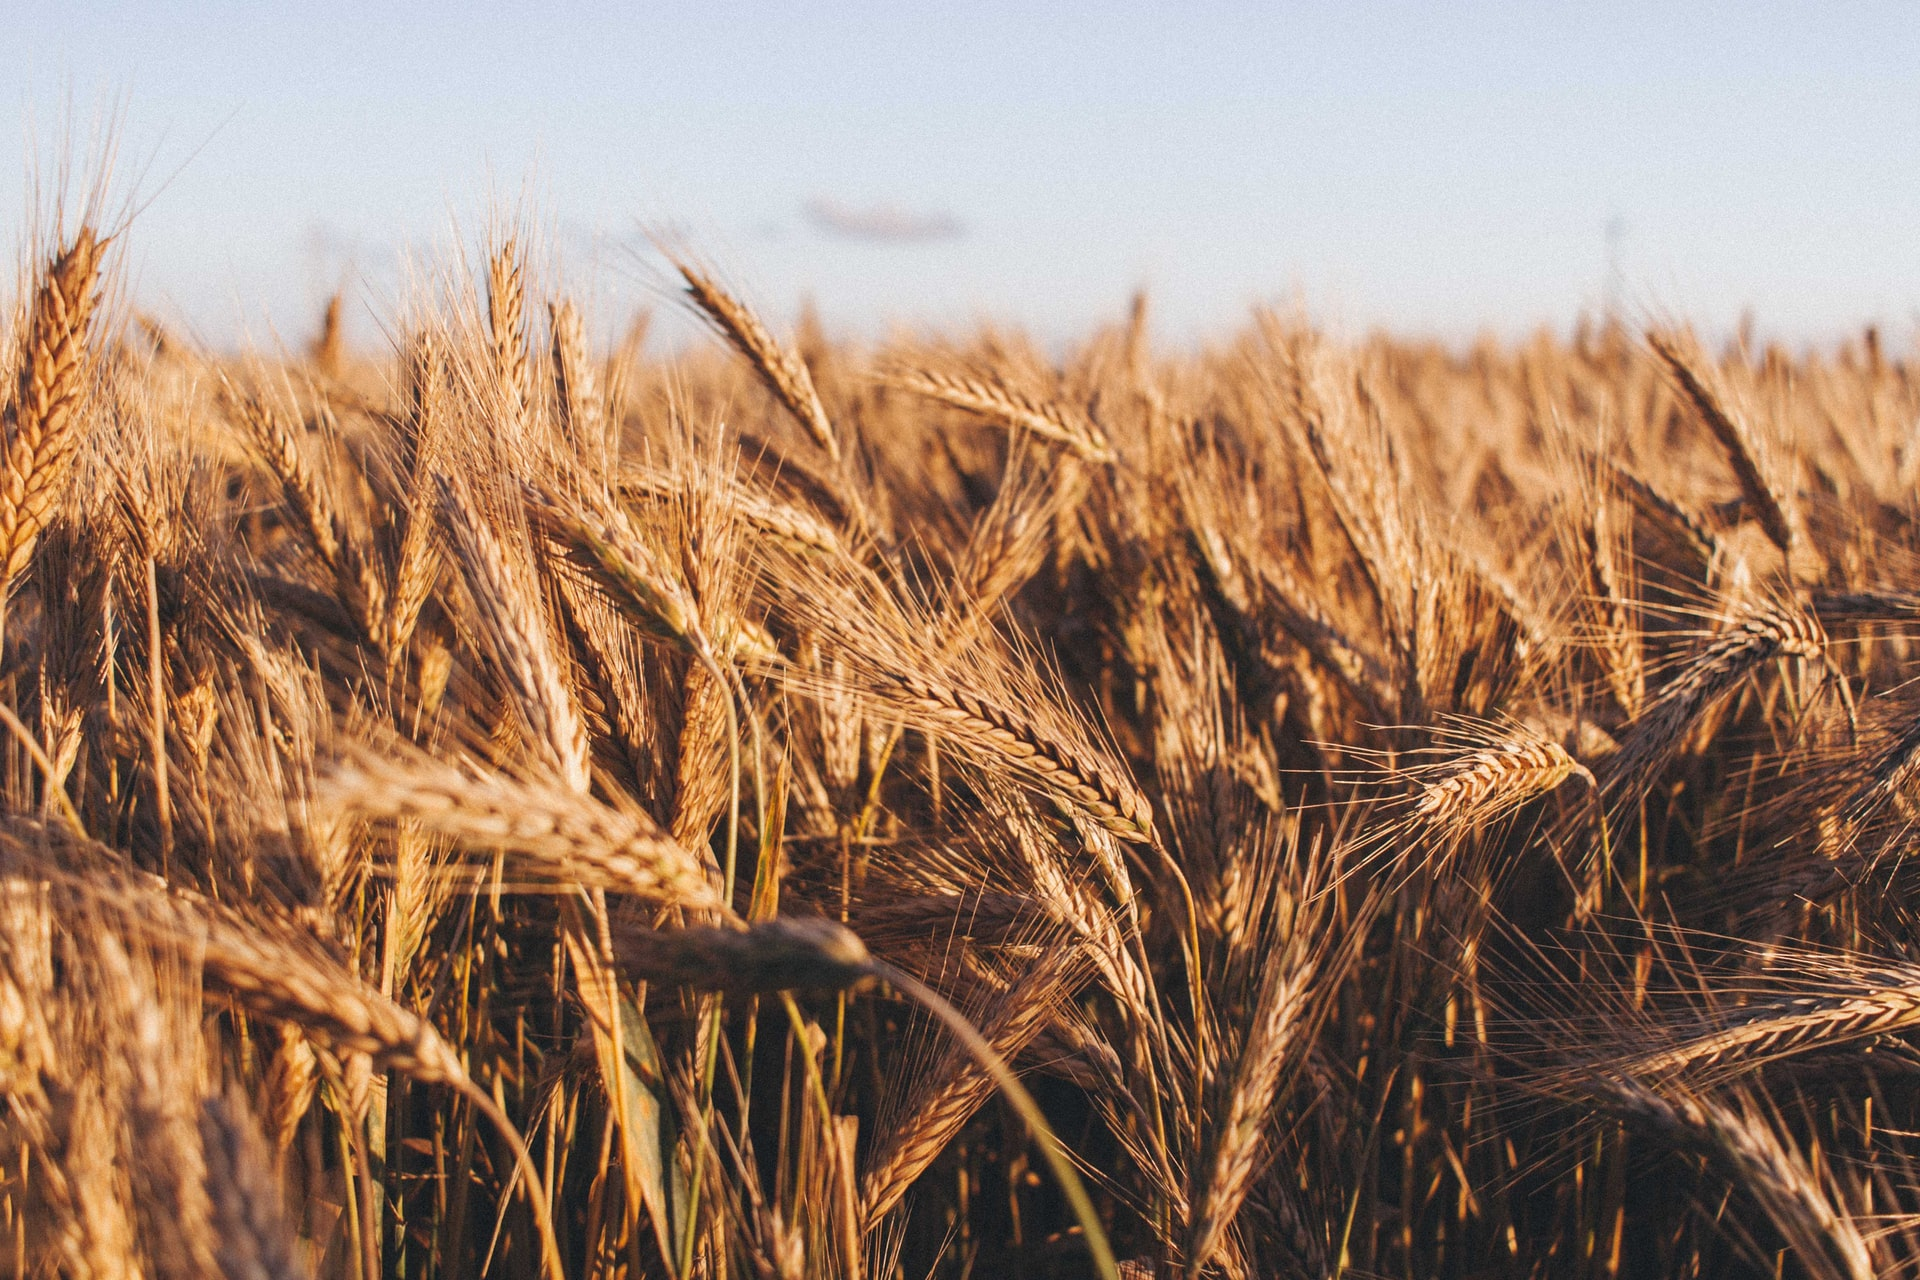 Crop Stocks Running Thin as Several Supply-Side Disruptions Push Up Commodity Prices